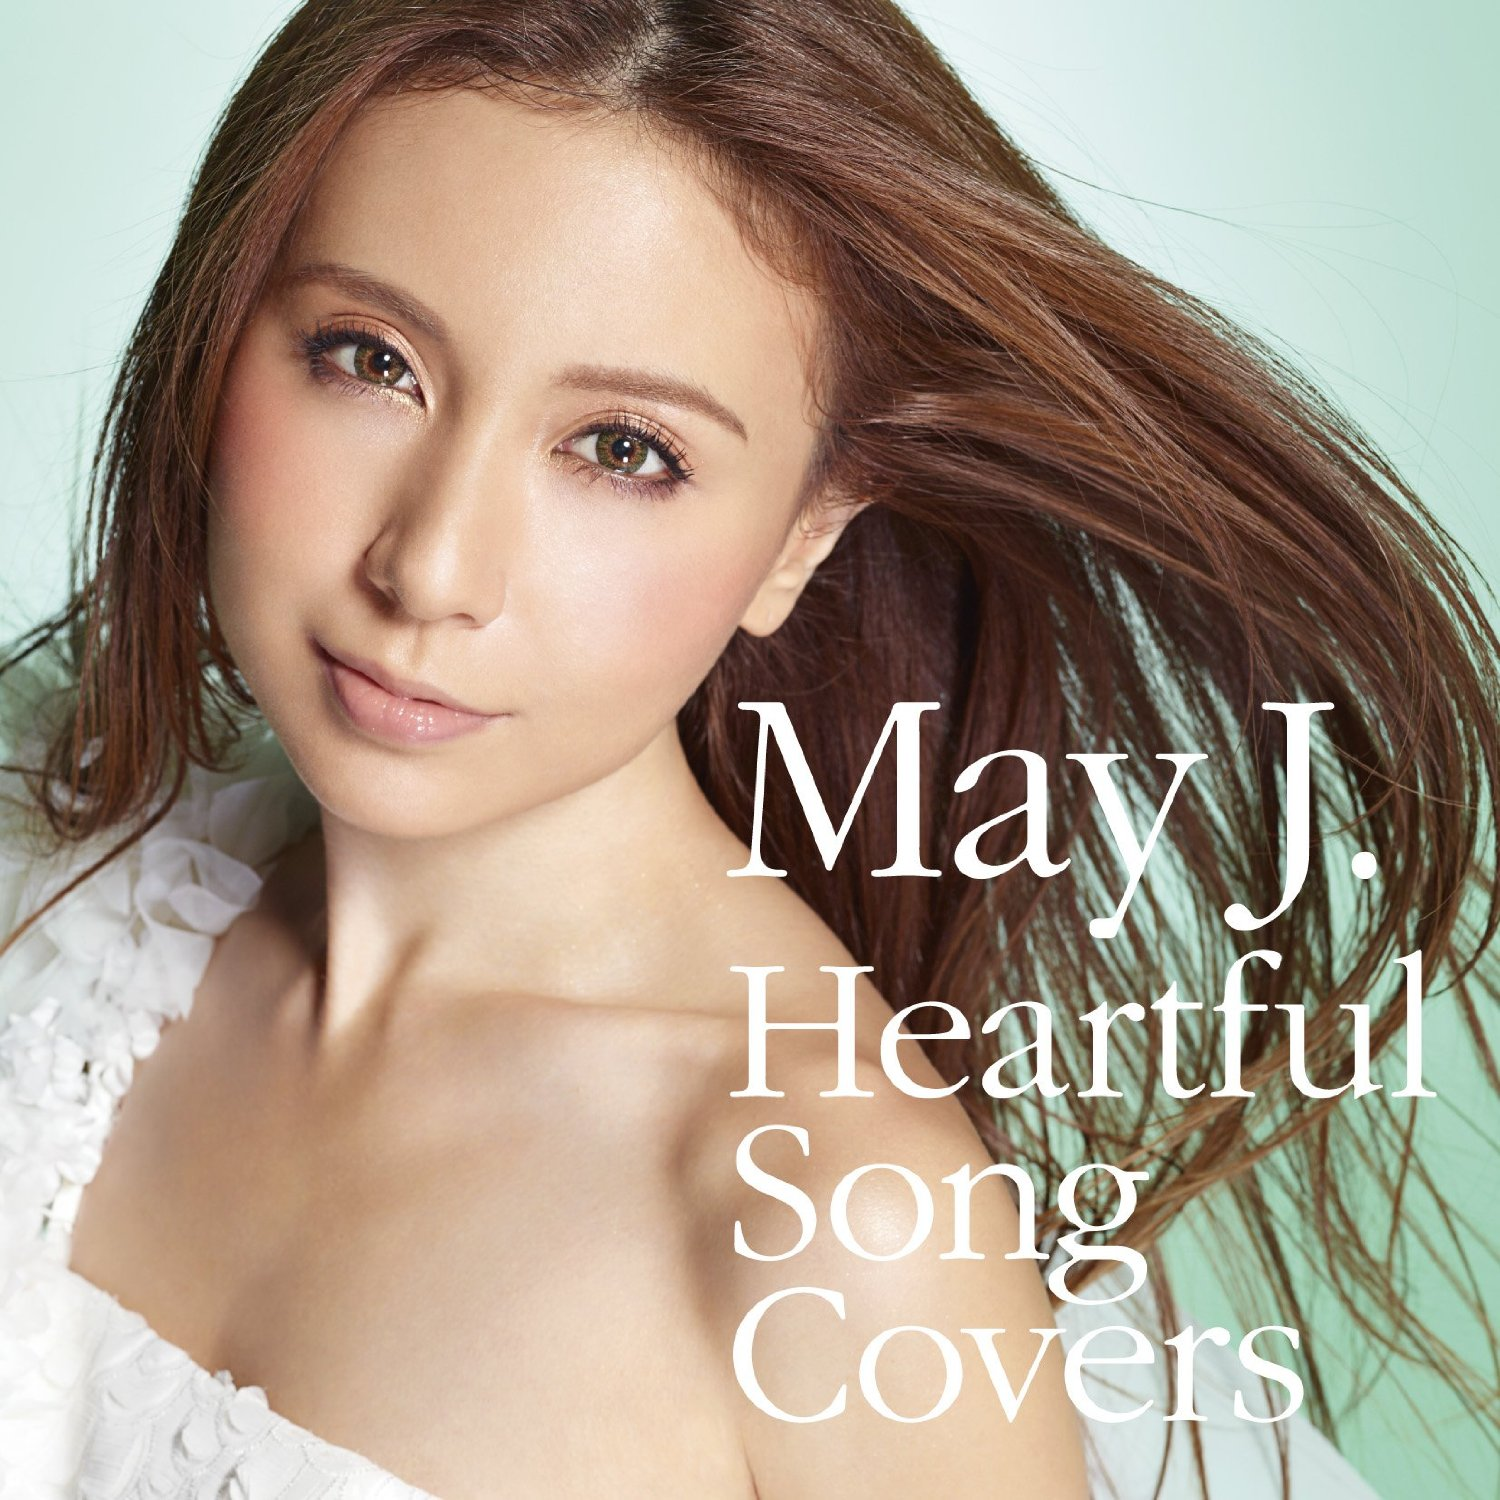 20160120.01.1 May J. - Heartful Song Covers cover 2.jpg